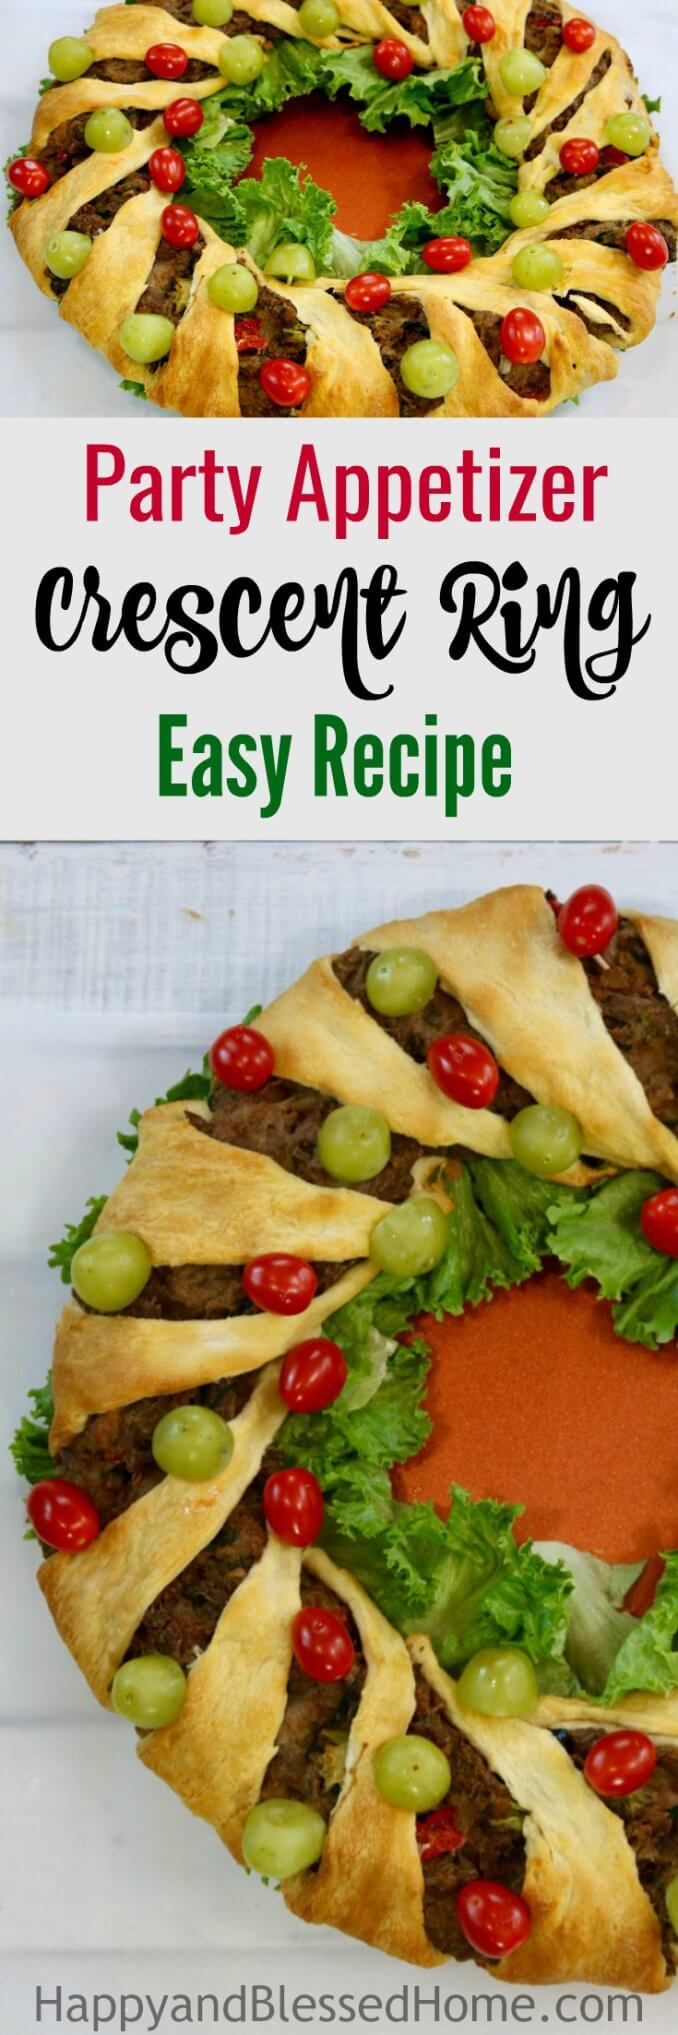 Easy Recipe Crescent Ring Party Appetizer - perfect for entertaining